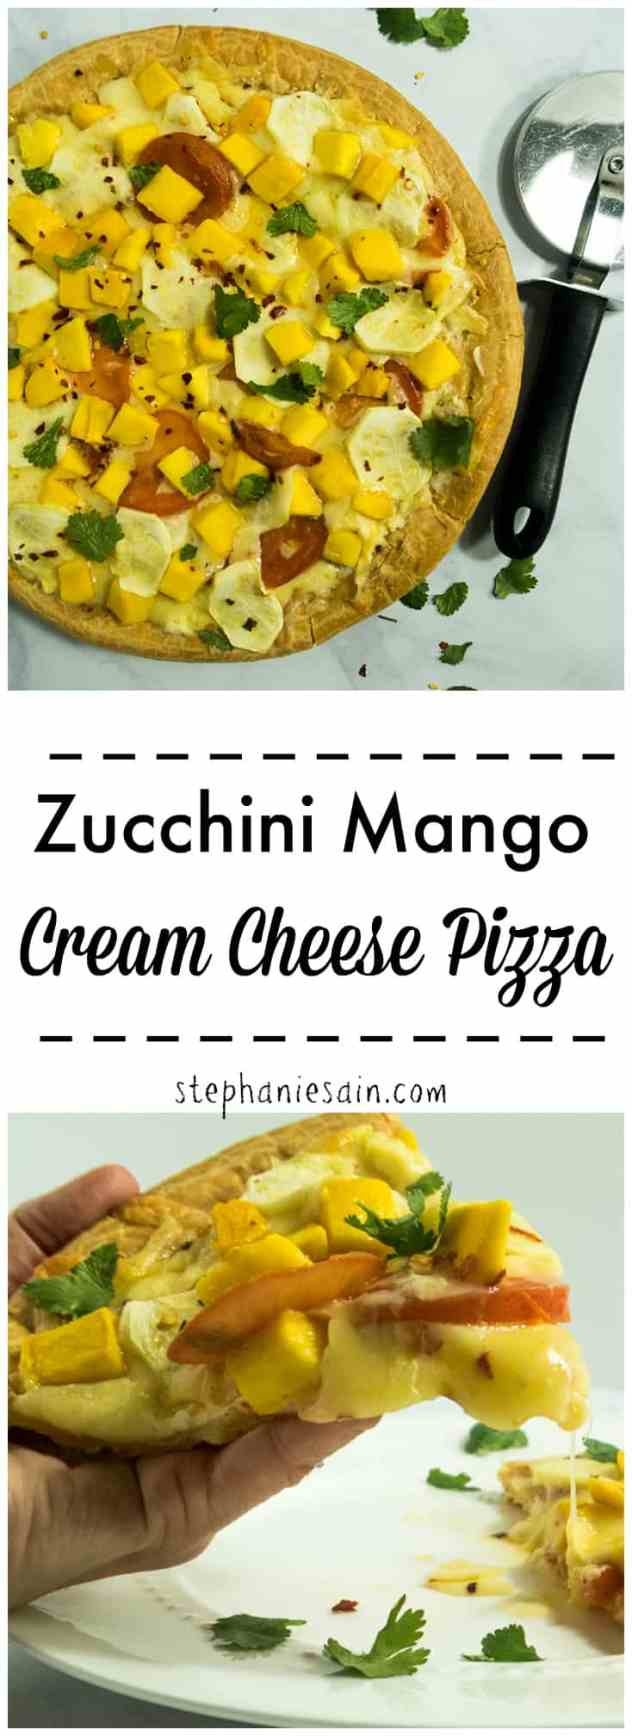 Zucchini Mango Cream Cheese Pizza is topped with cream cheese and loaded with zucchini and mango for a tasty fun way to switch up Pizza night! Vegetarian & Gluten Free.